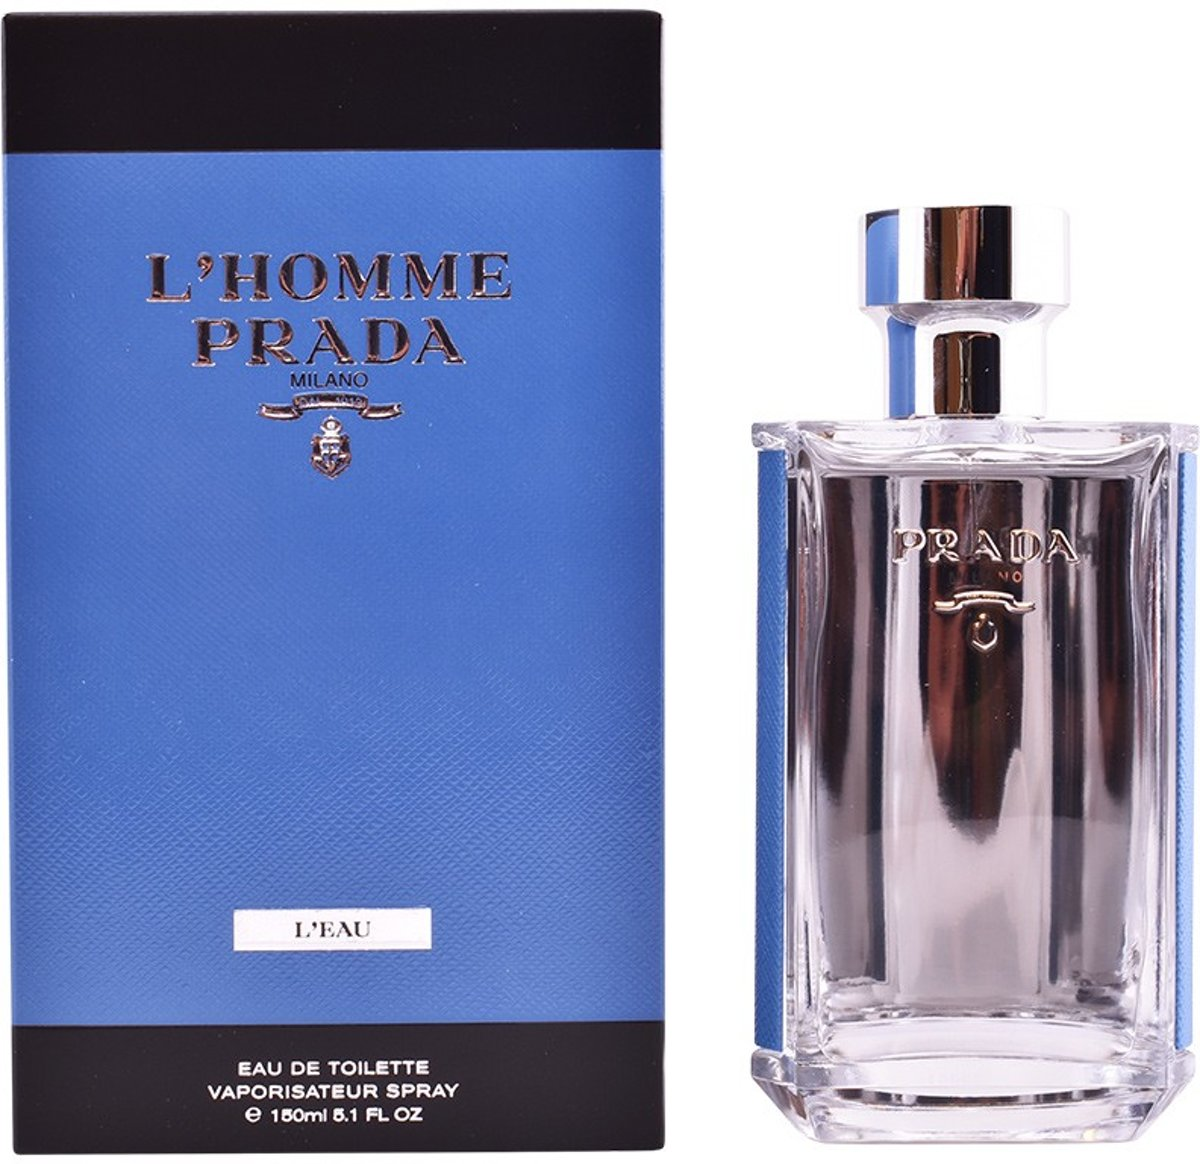 MULTI BUNDEL 2 stuks LHOMME PRADA LEAU Eau de Toilette Spray 150 ml